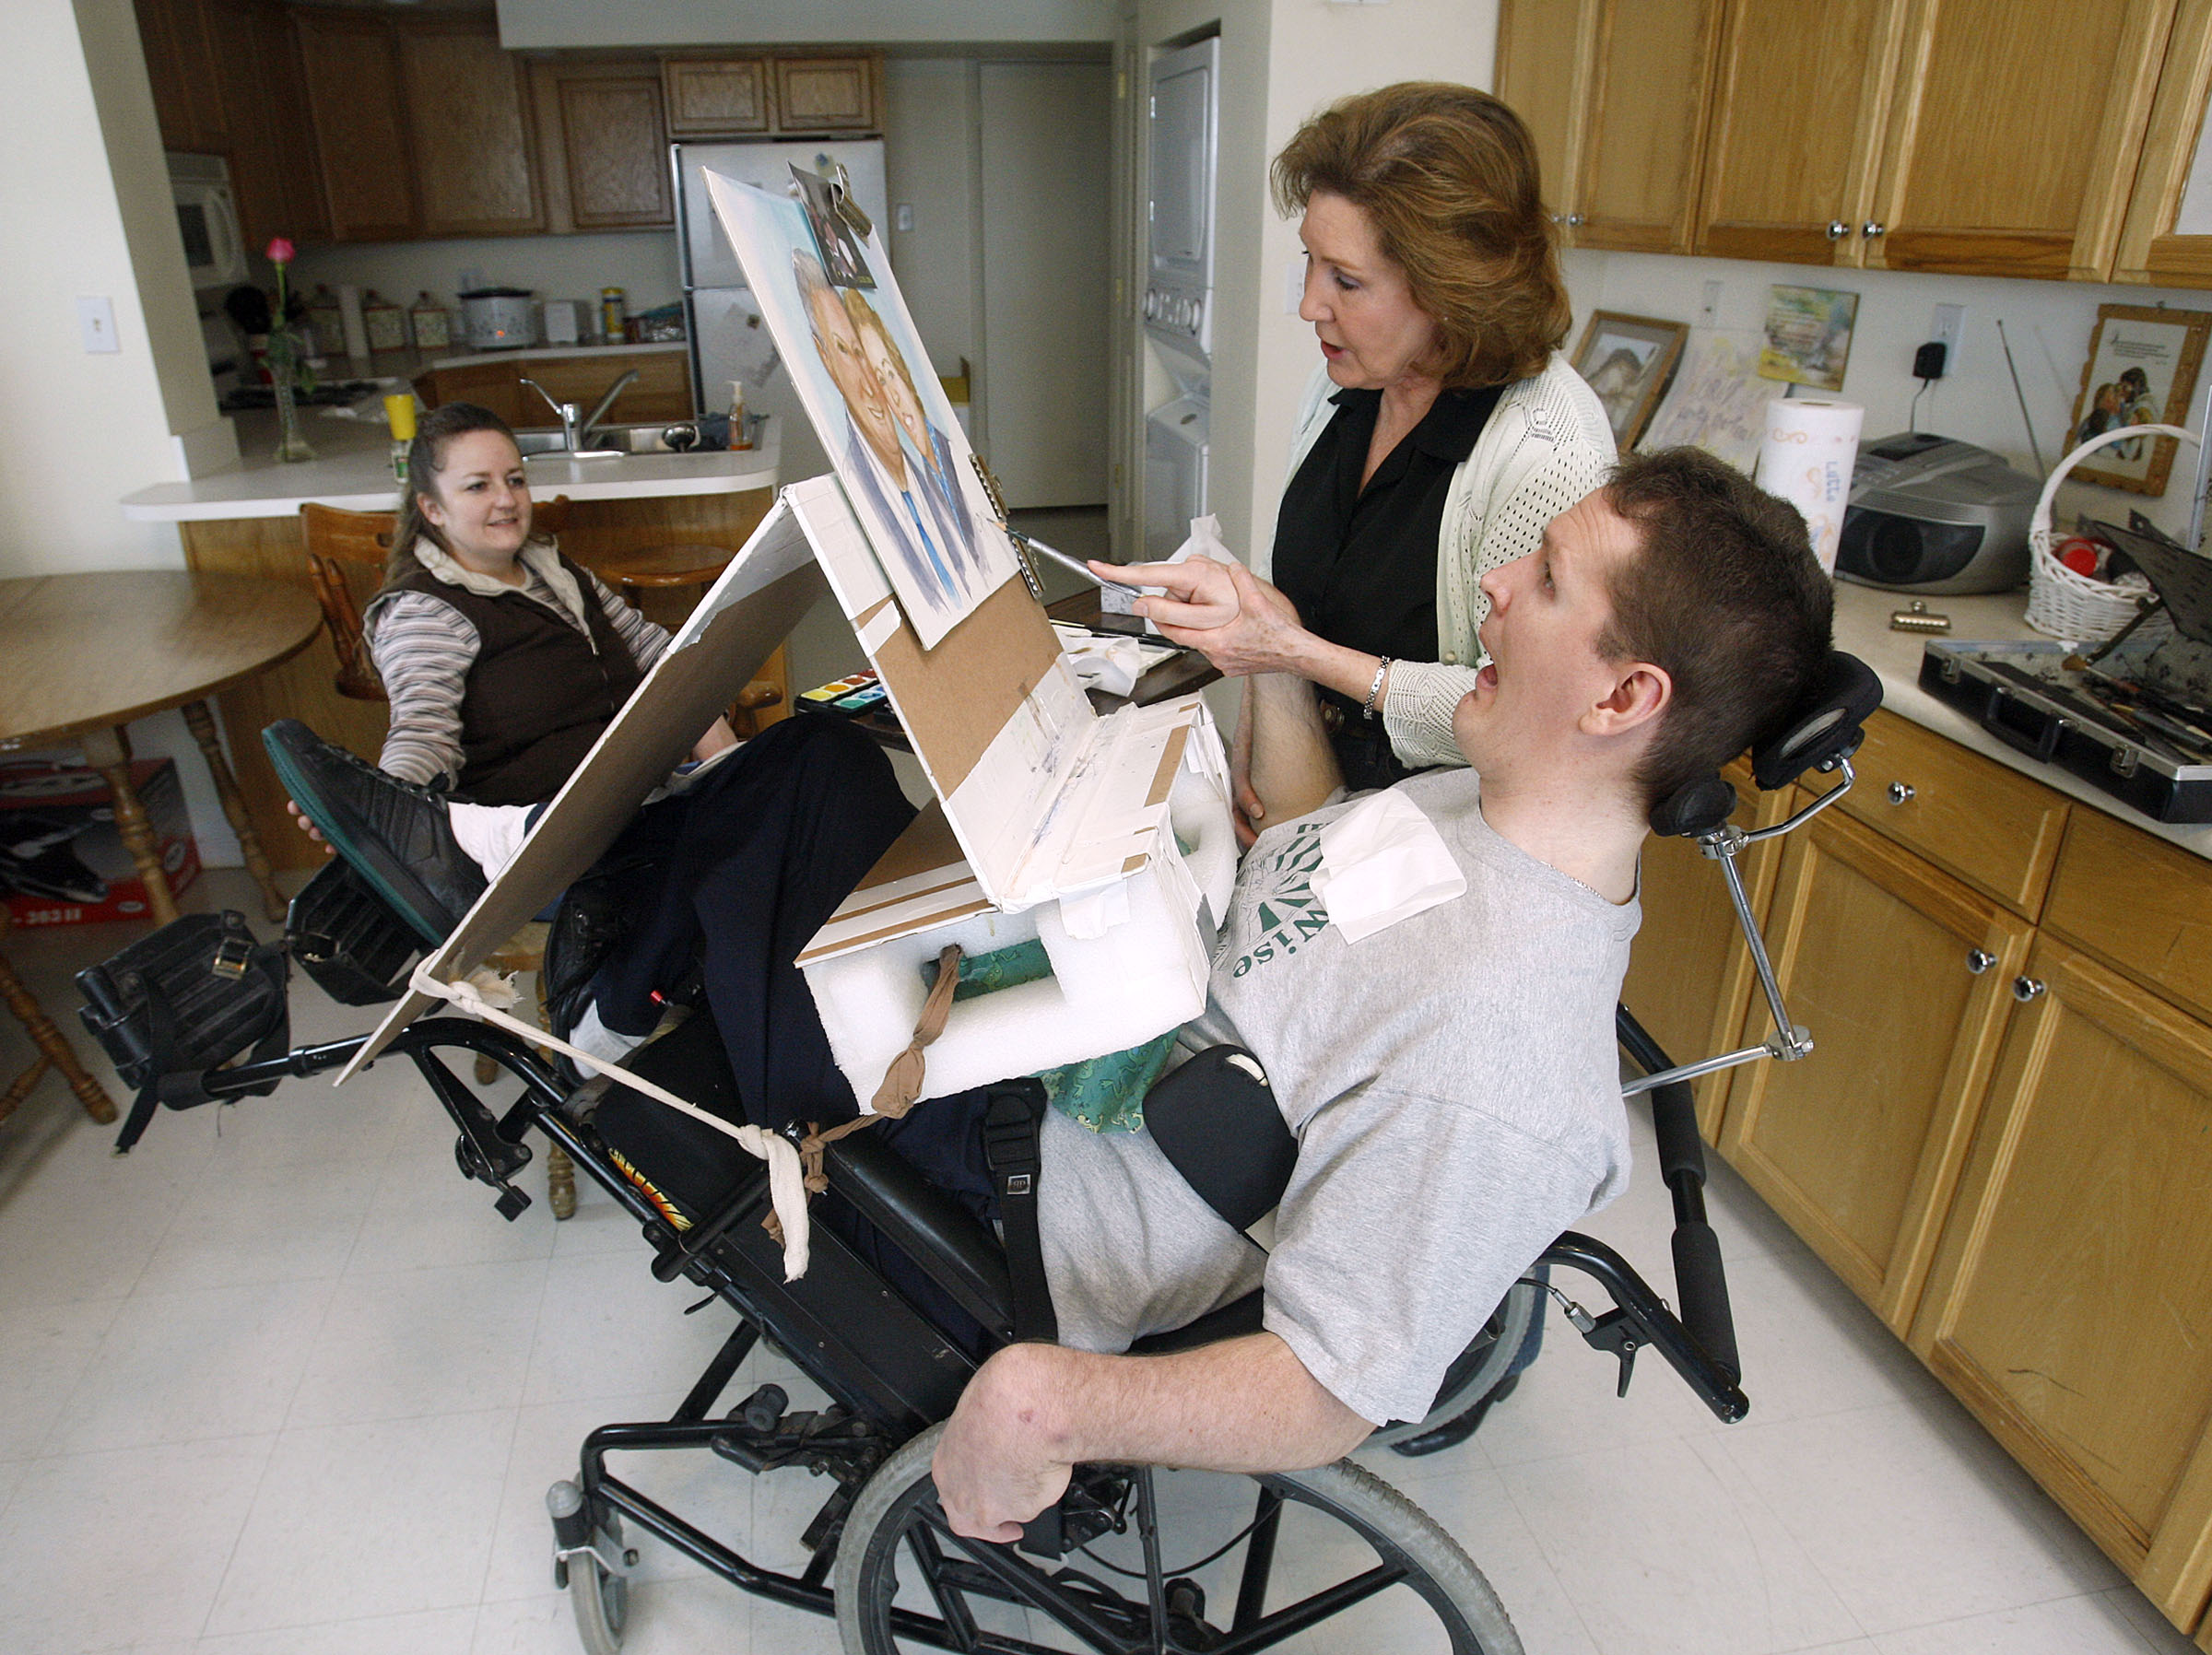 Carol Harding helps Orin Voorheis paint a water color painting of his parents. Harding holds his arm up and shows him where to paint but Voorheis makes the strokes and chooses the colors he wants to use in his paintings. His wife, Chartina Voorheis (at left), watches as he paints.